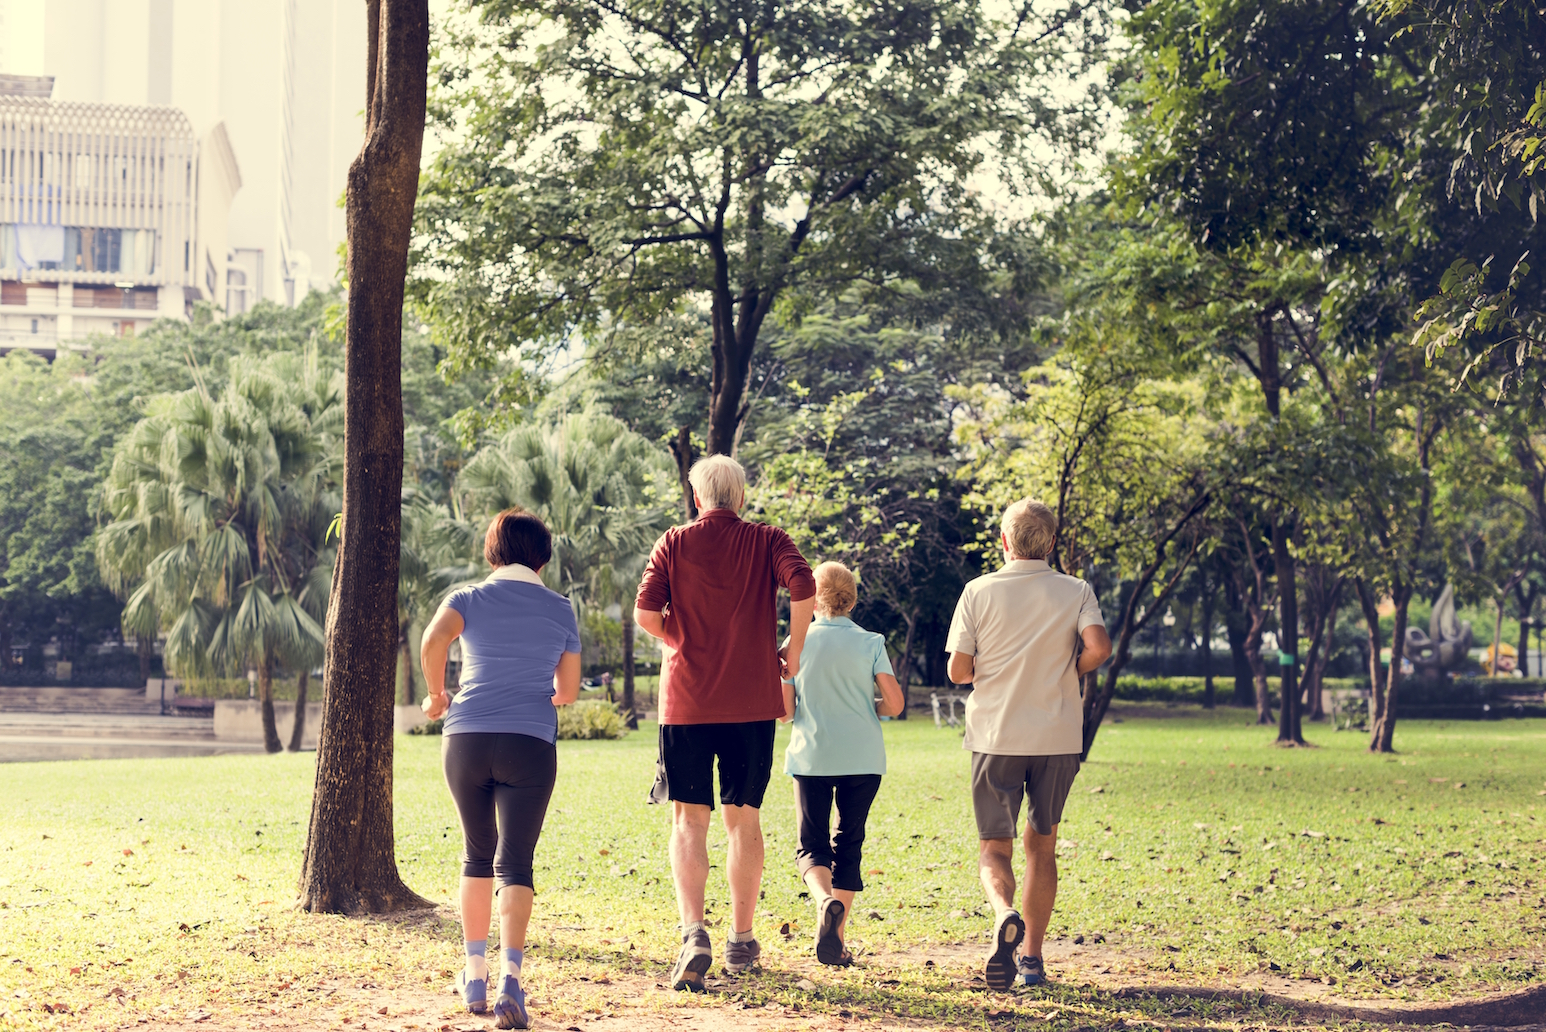 A new study found that seniors lost all benefits of exercise when subjected to short-term exposure to air pollution.